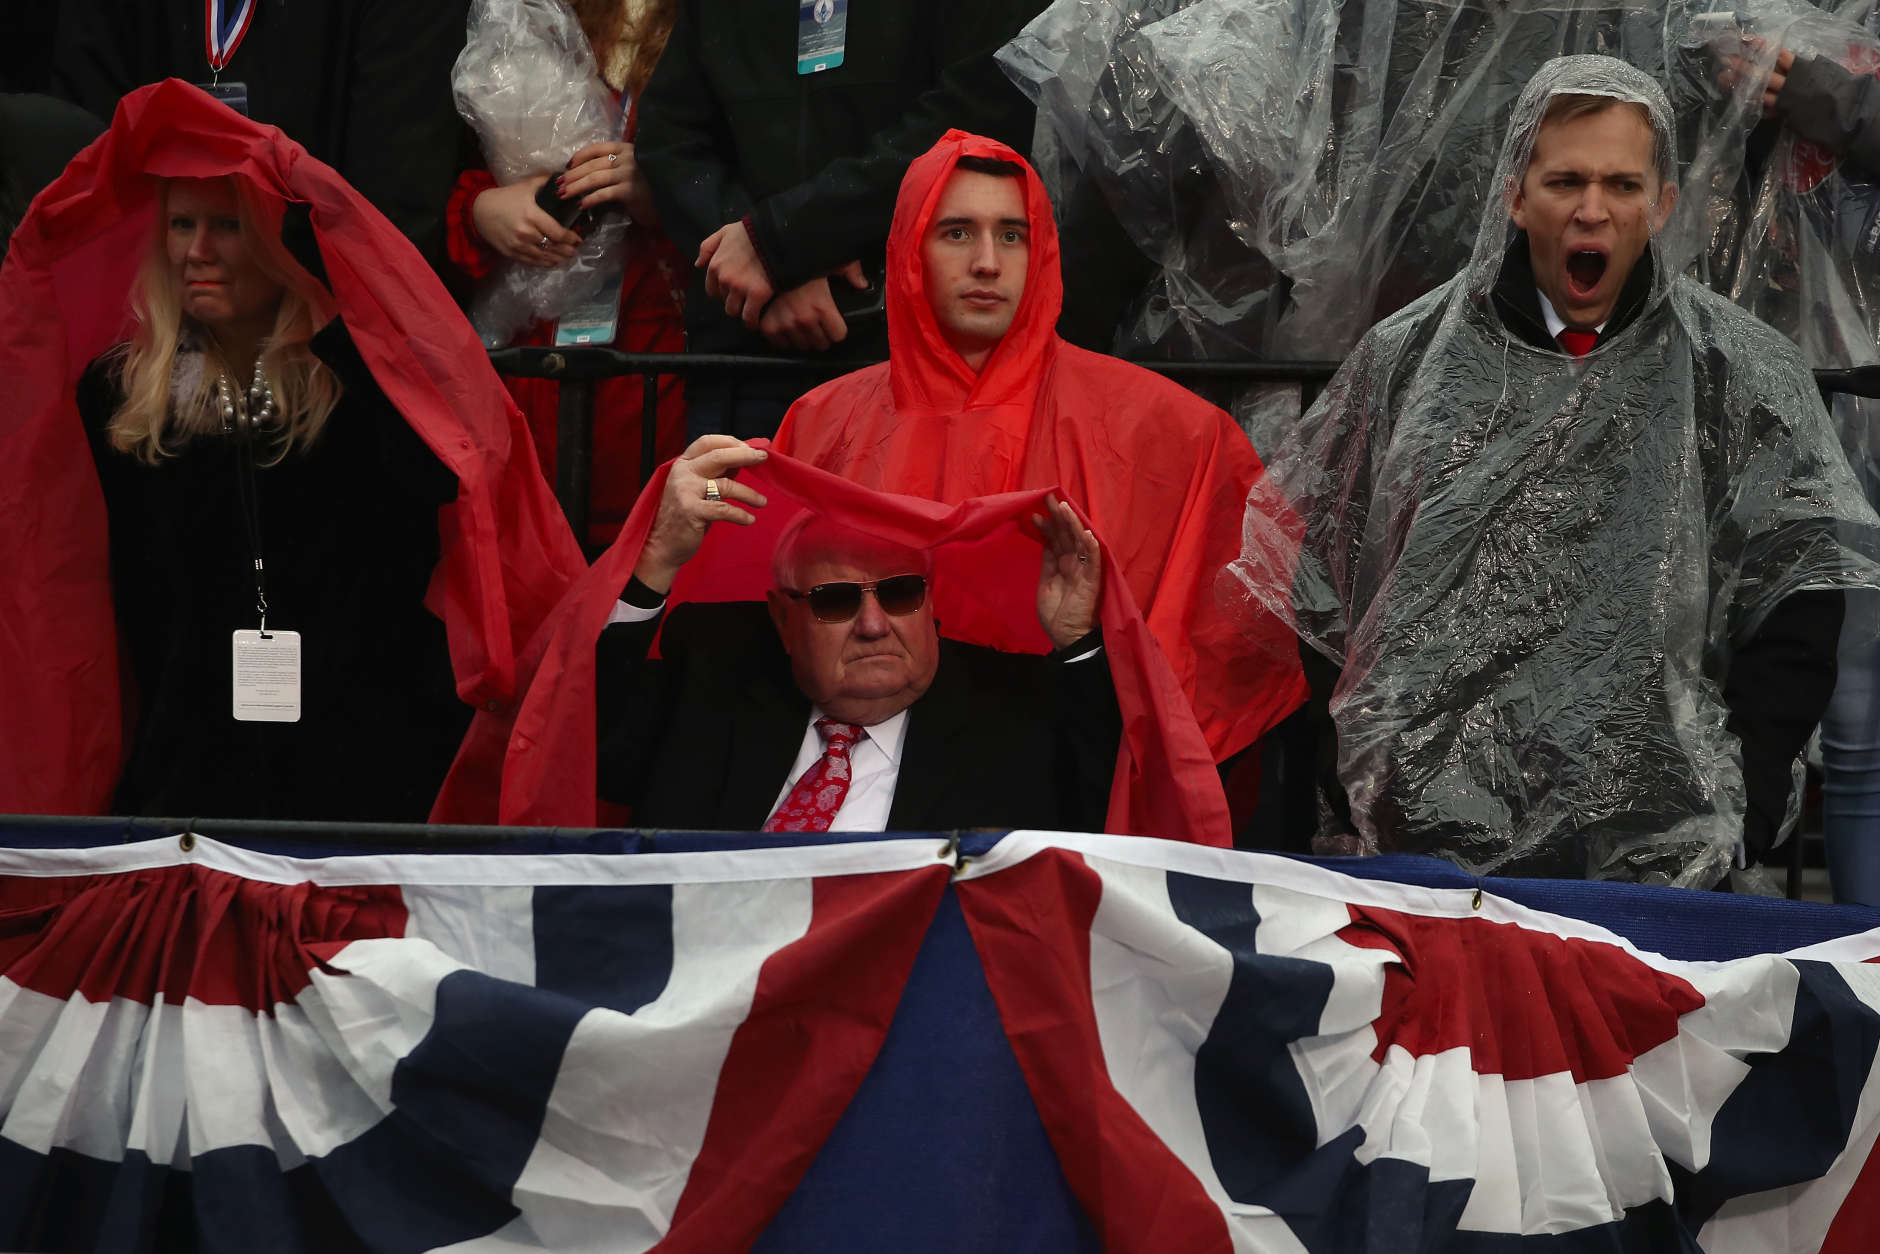 WASHINGTON, DC - JANUARY 20:  Spectators line the parade route in the rain during the Inaugural Parade on January 20, 2017 in Washington, DC. Donald J. Trump was sworn in today as the 45th president of the United States.  (Photo by Mark Wilson/Getty Images)